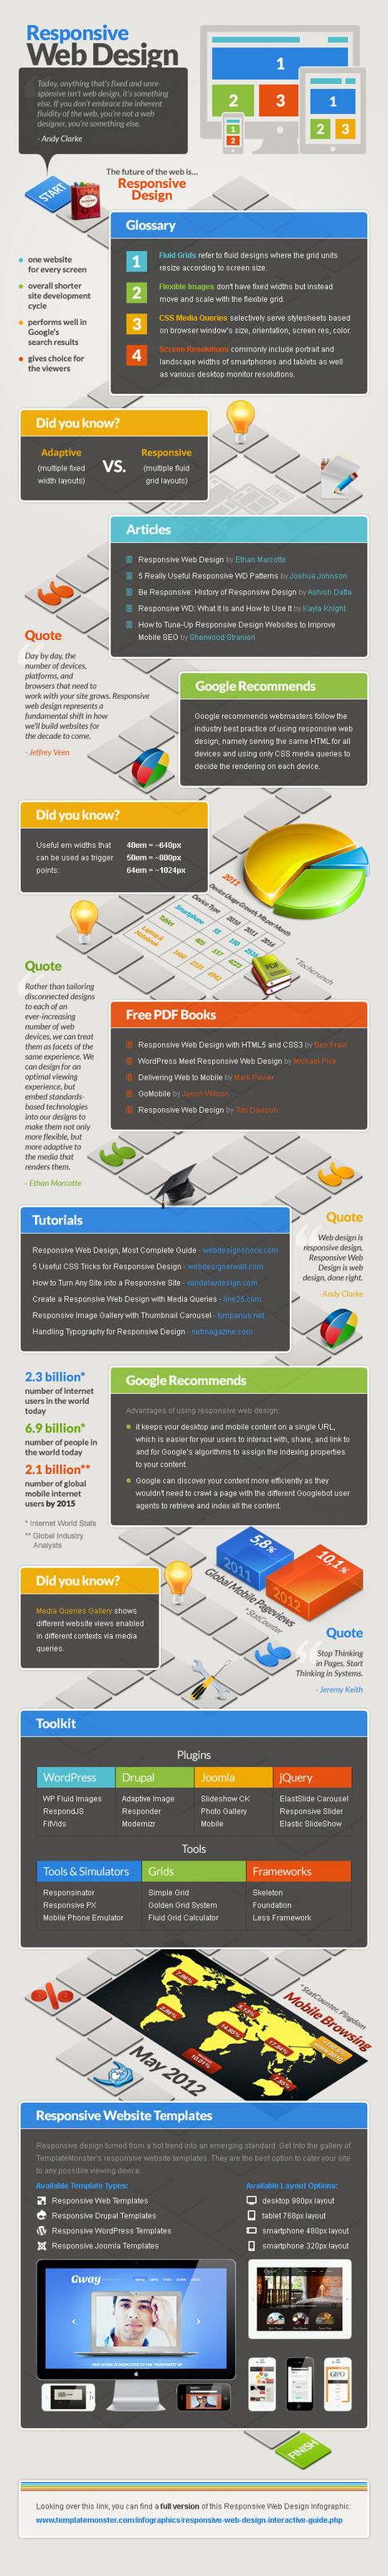 INFOGRAPHIC: Informative and Absorbing - Responsive Web Design Interactive Guide | Cloud Central | Scoop.it